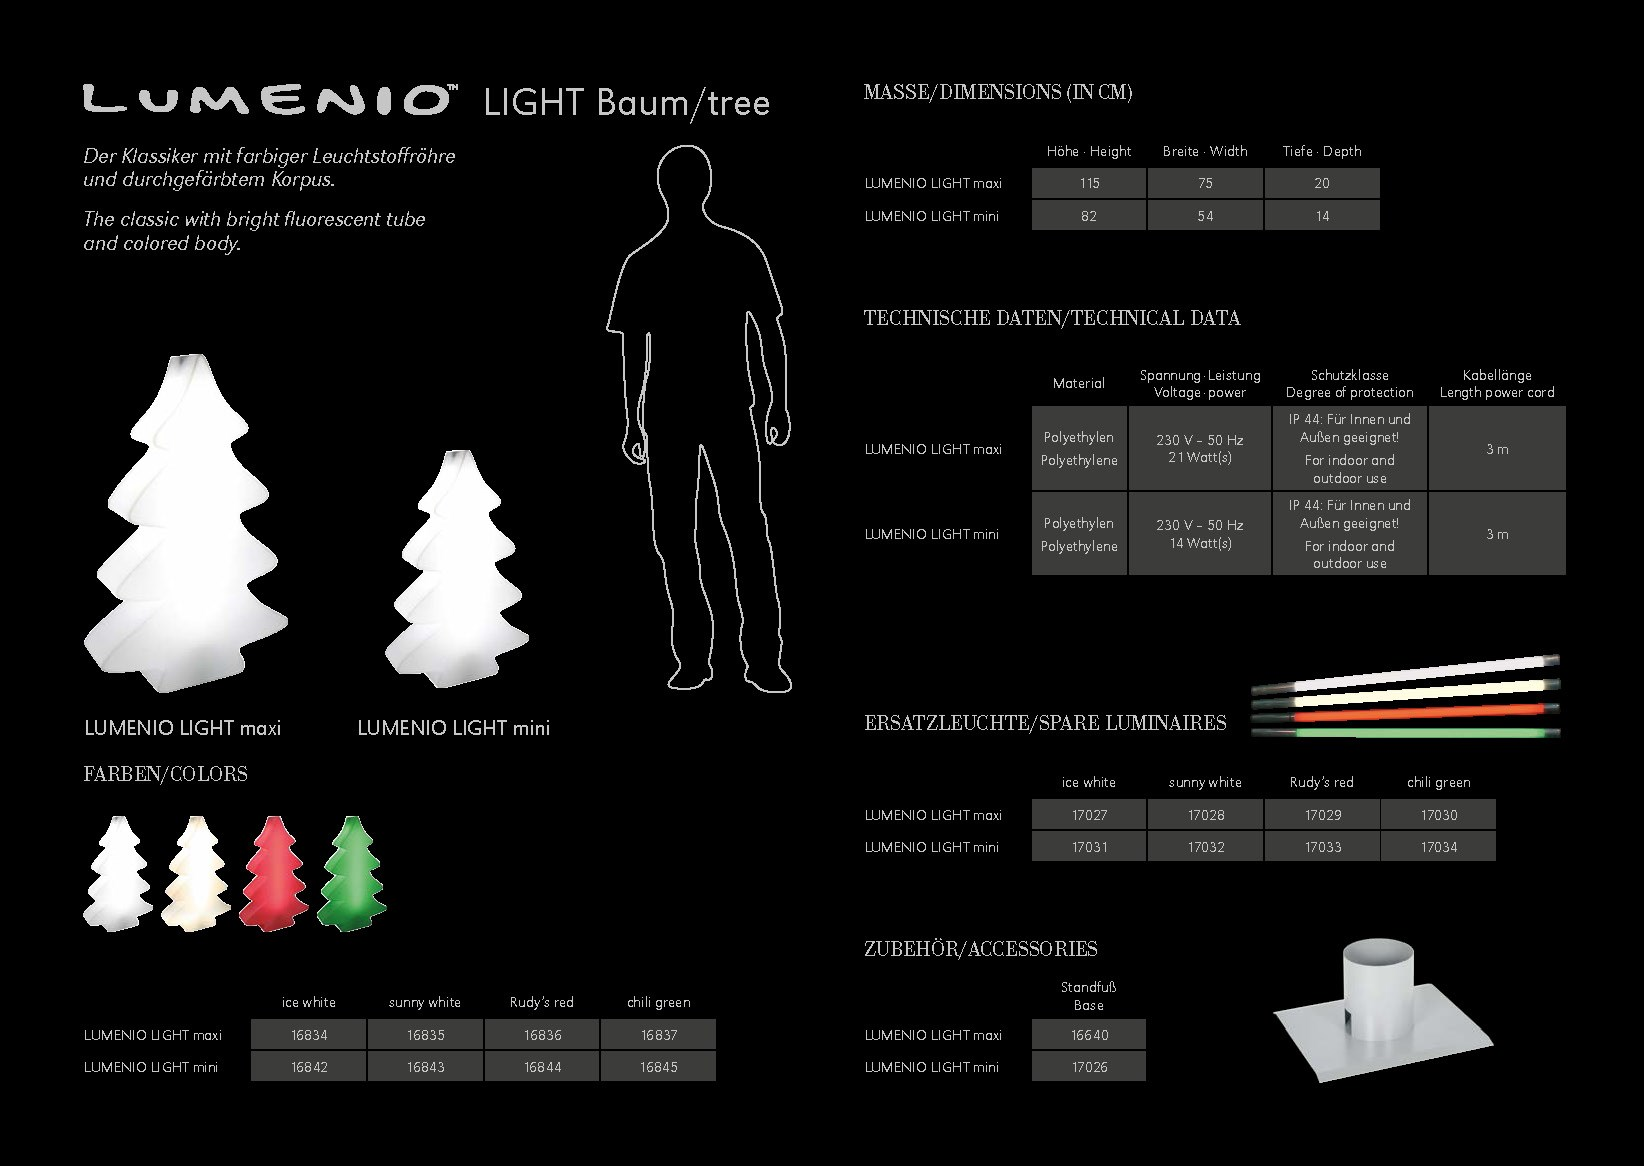 Lumino Light Baum Broschuere